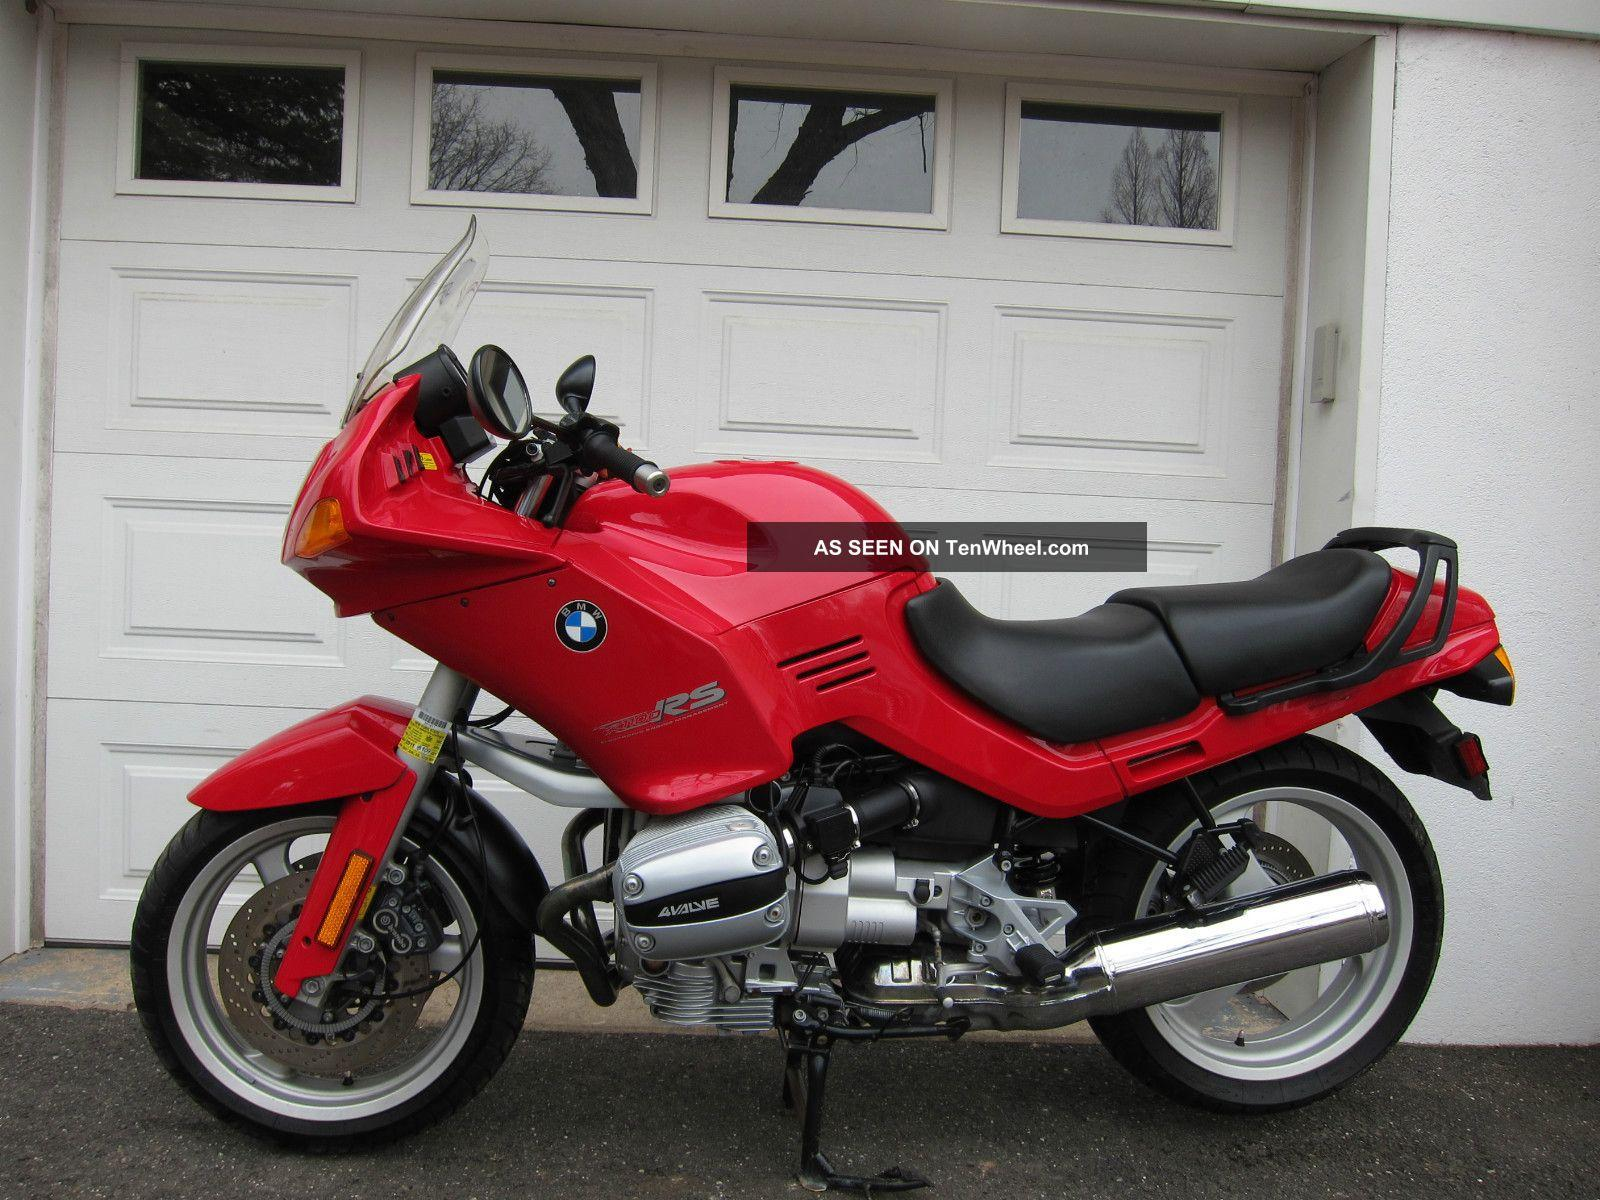 BMW R1100RS 1992 images #5277